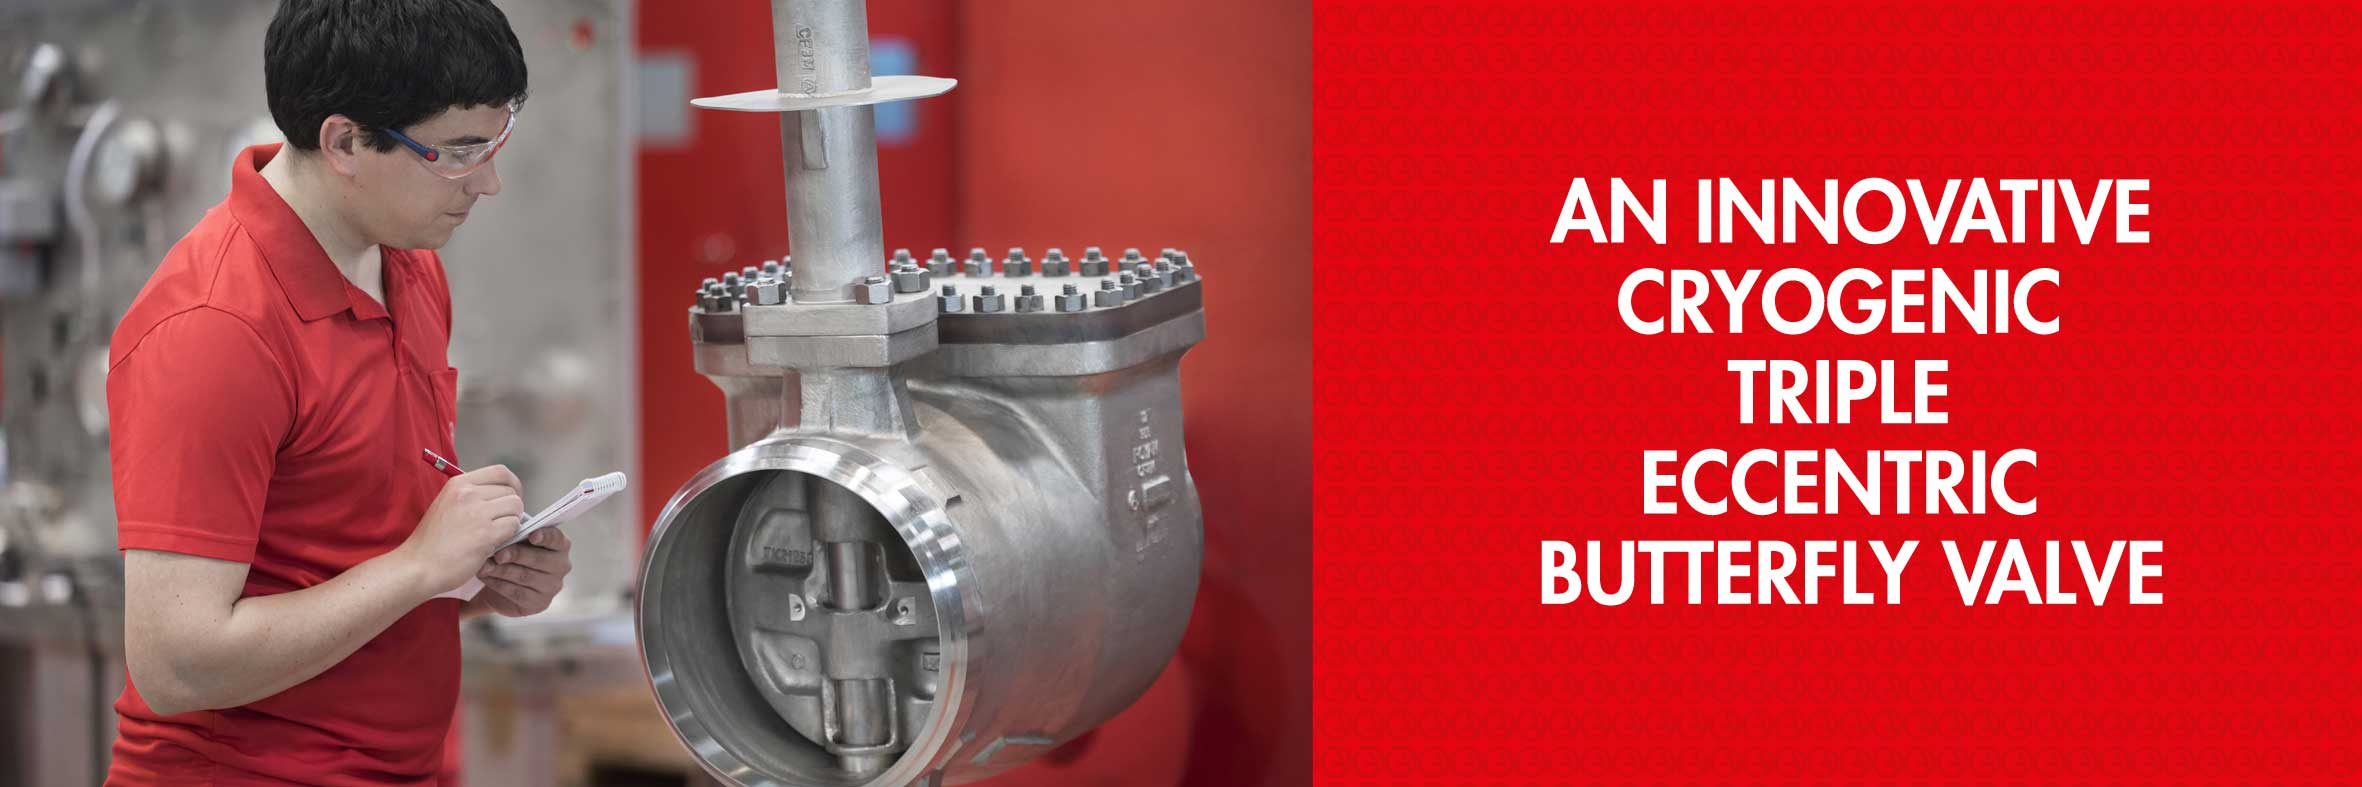 AMPO POYAM VALVES IS MANUFACTURING CRYOGENIC TRIPLE